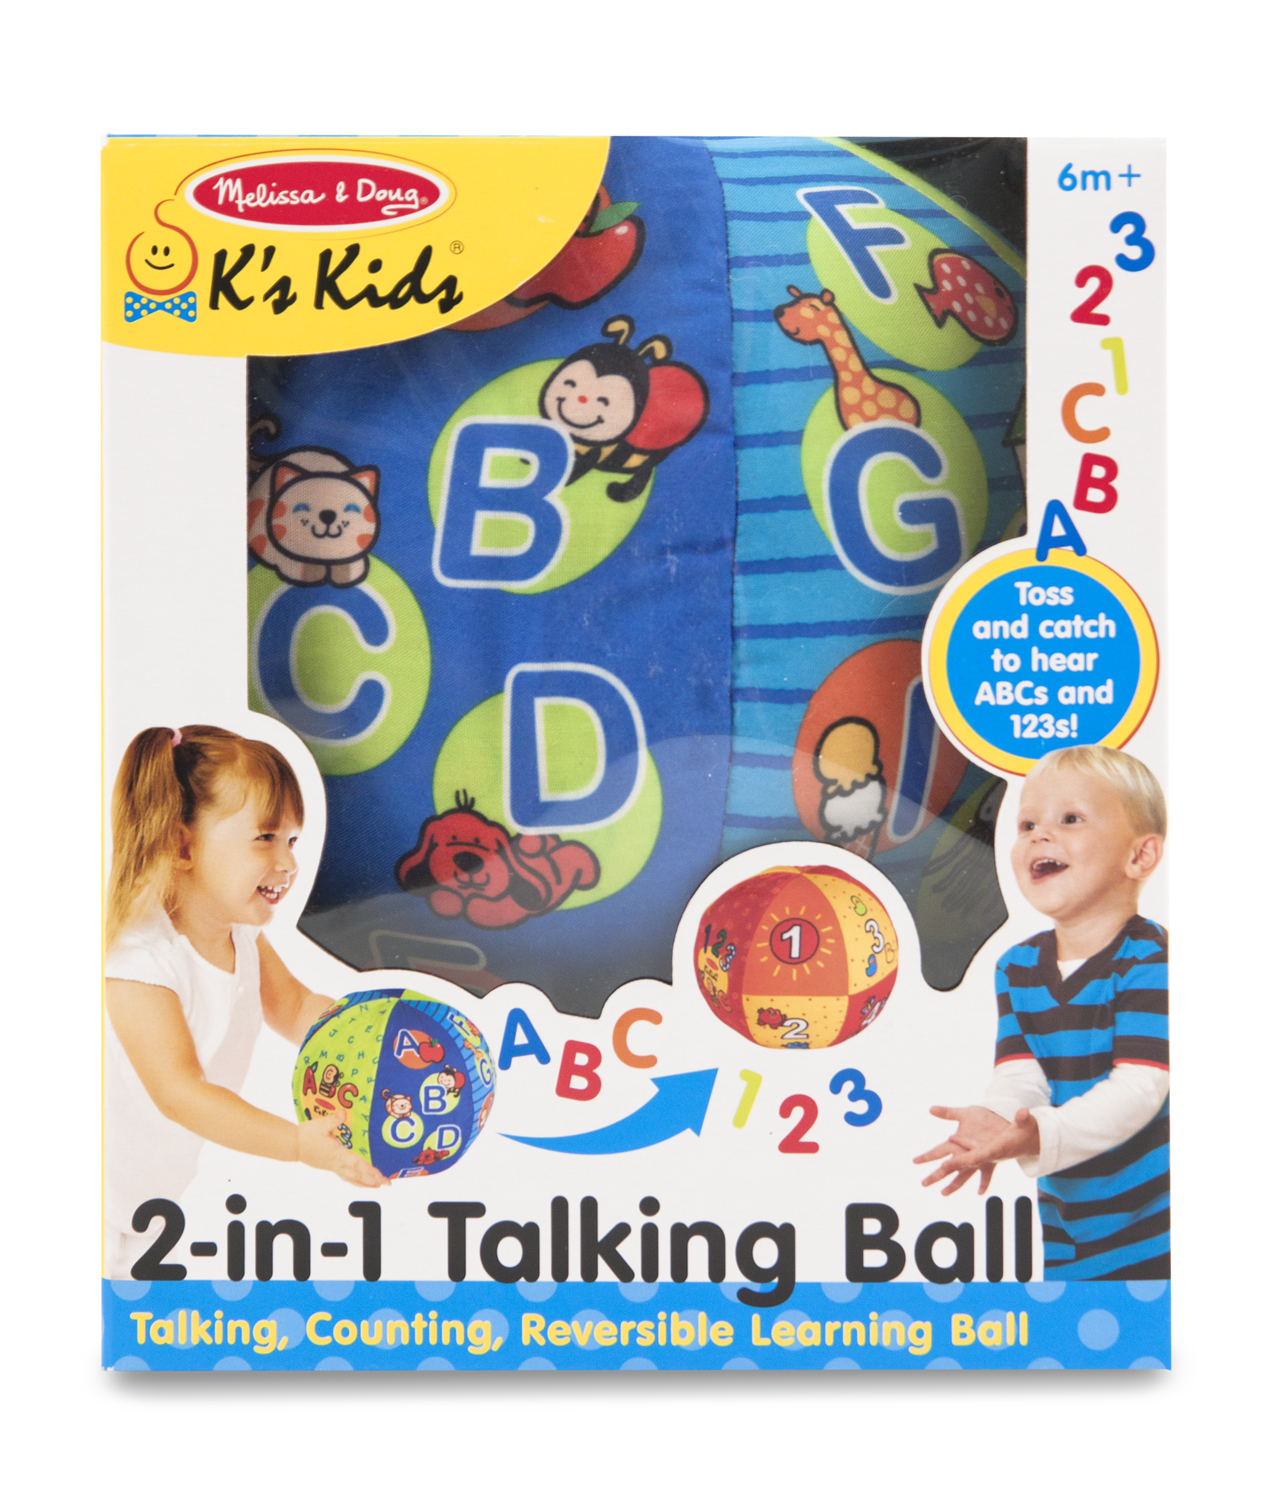 Image for Melissa & Doug 2 IN 1 TALKING BALL BABY PLAY from Circuit City